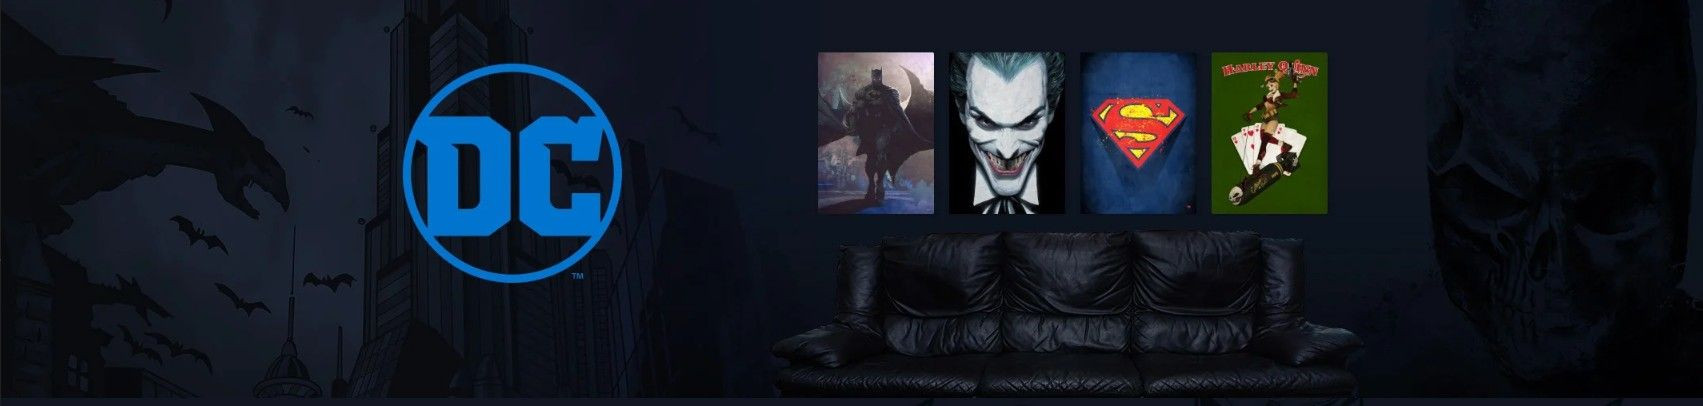 DC Comics Officialy Licensed Prints on Wall